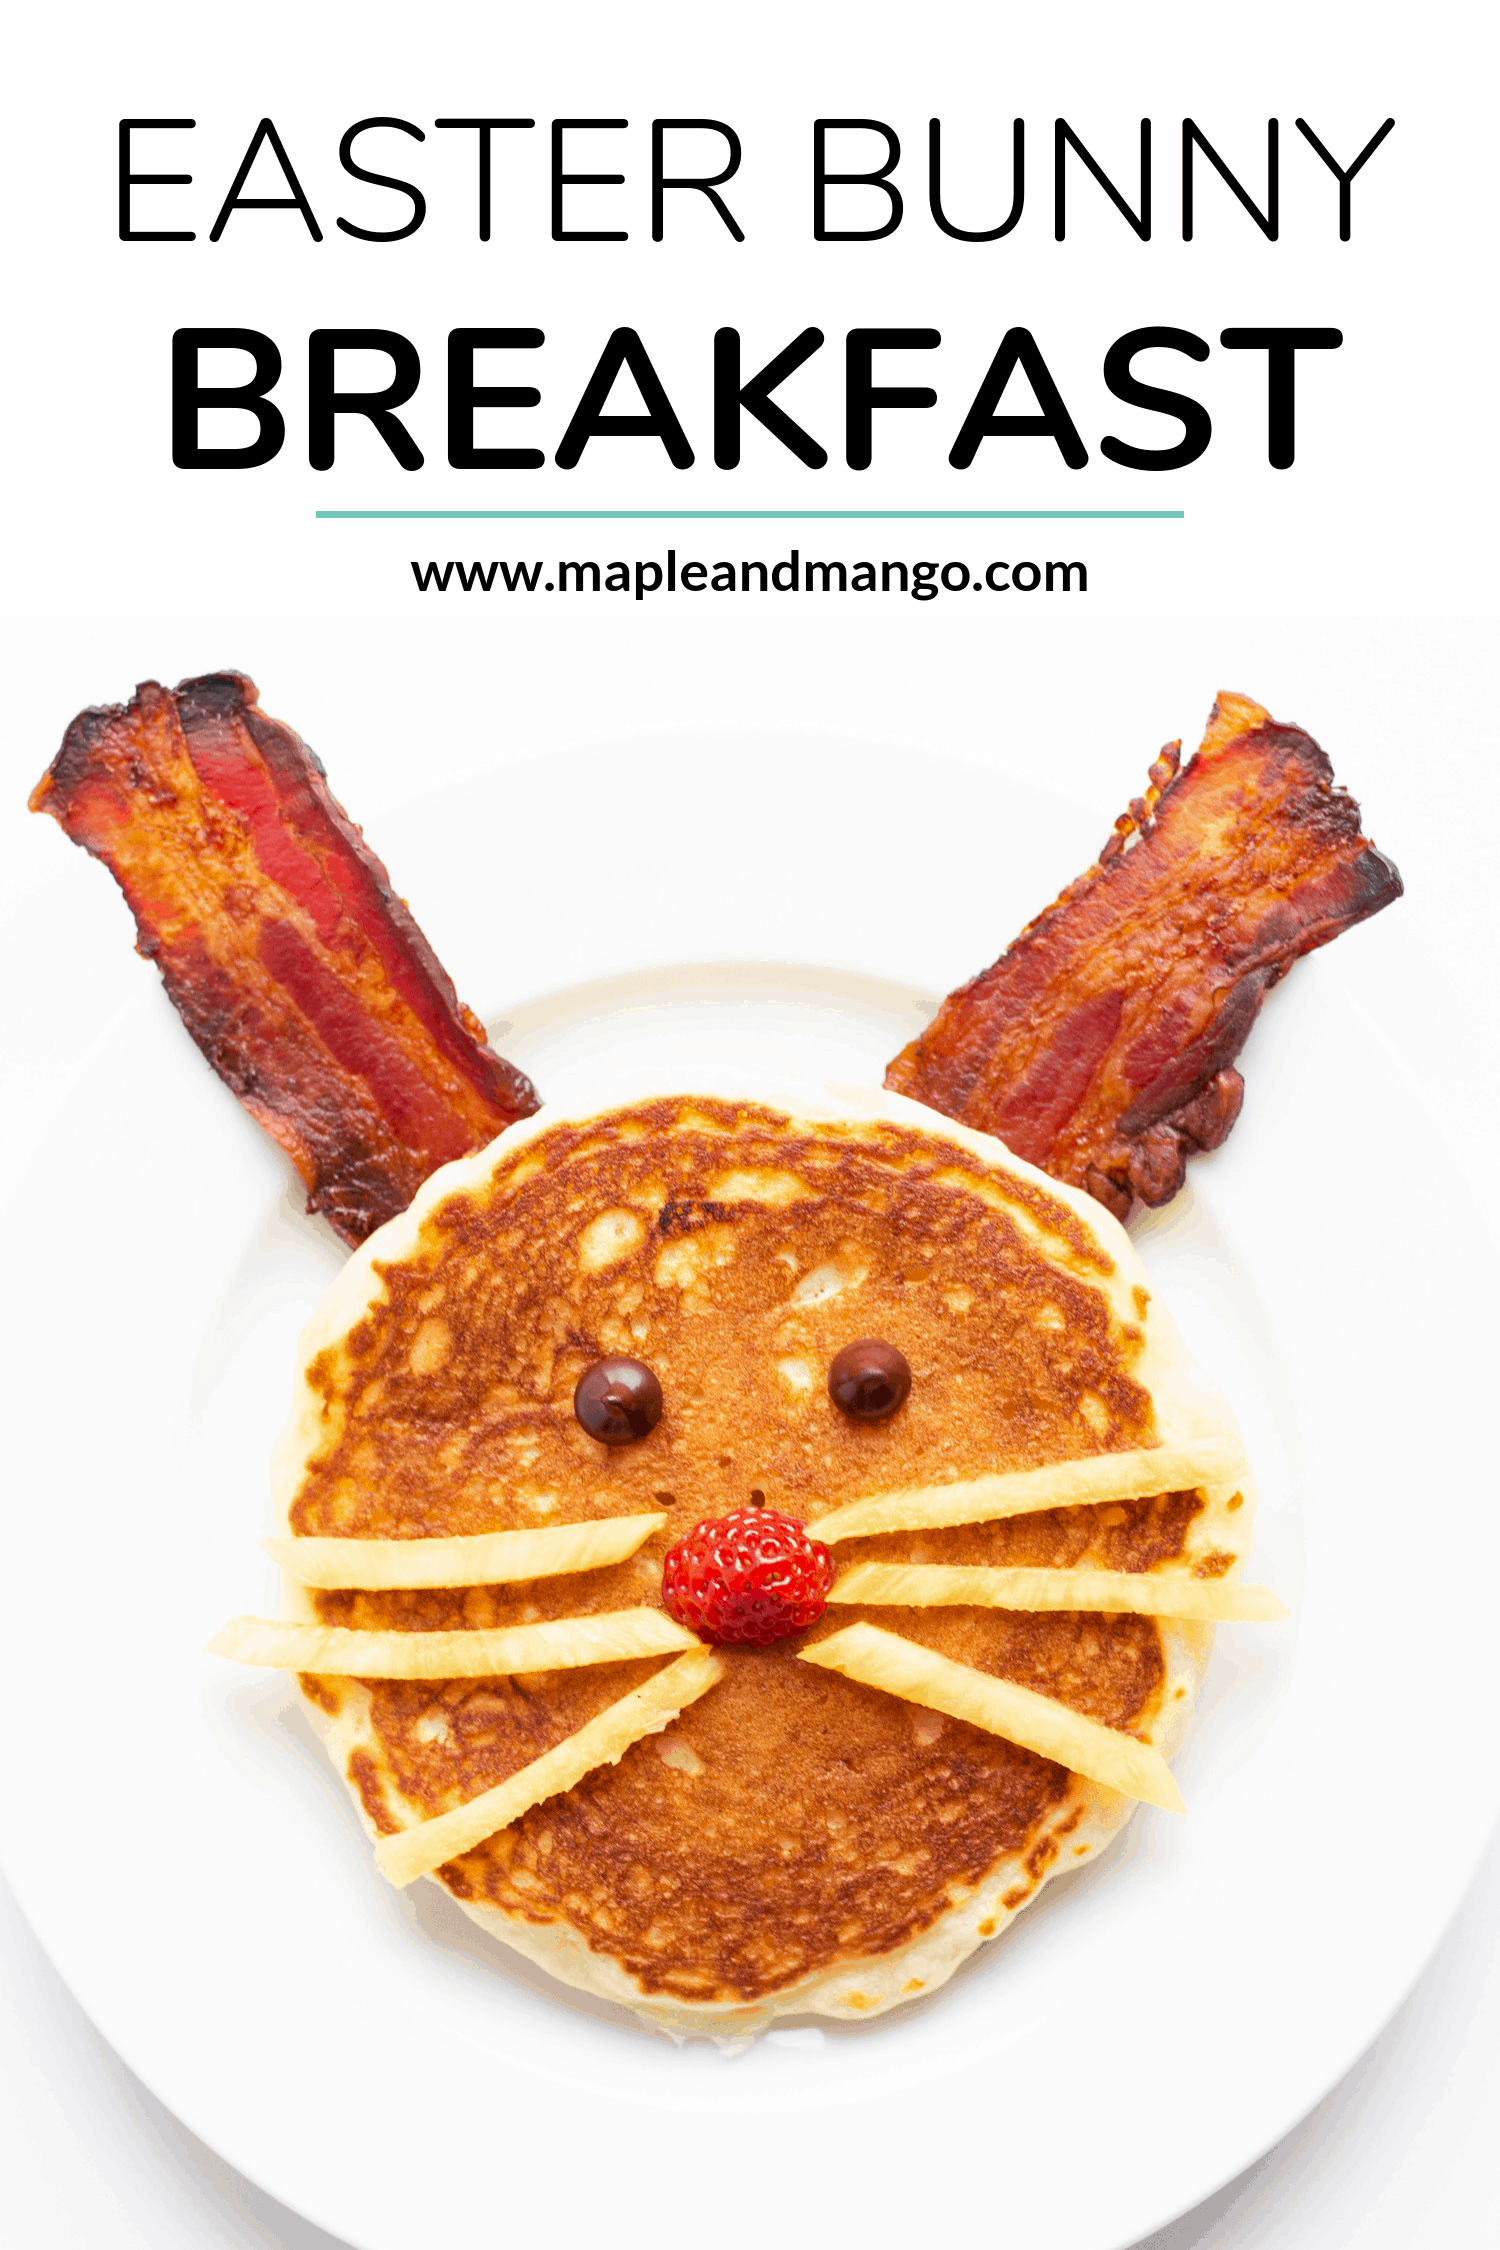 Bacon and pancake shaped to look like an Easter Bunny on a white plate